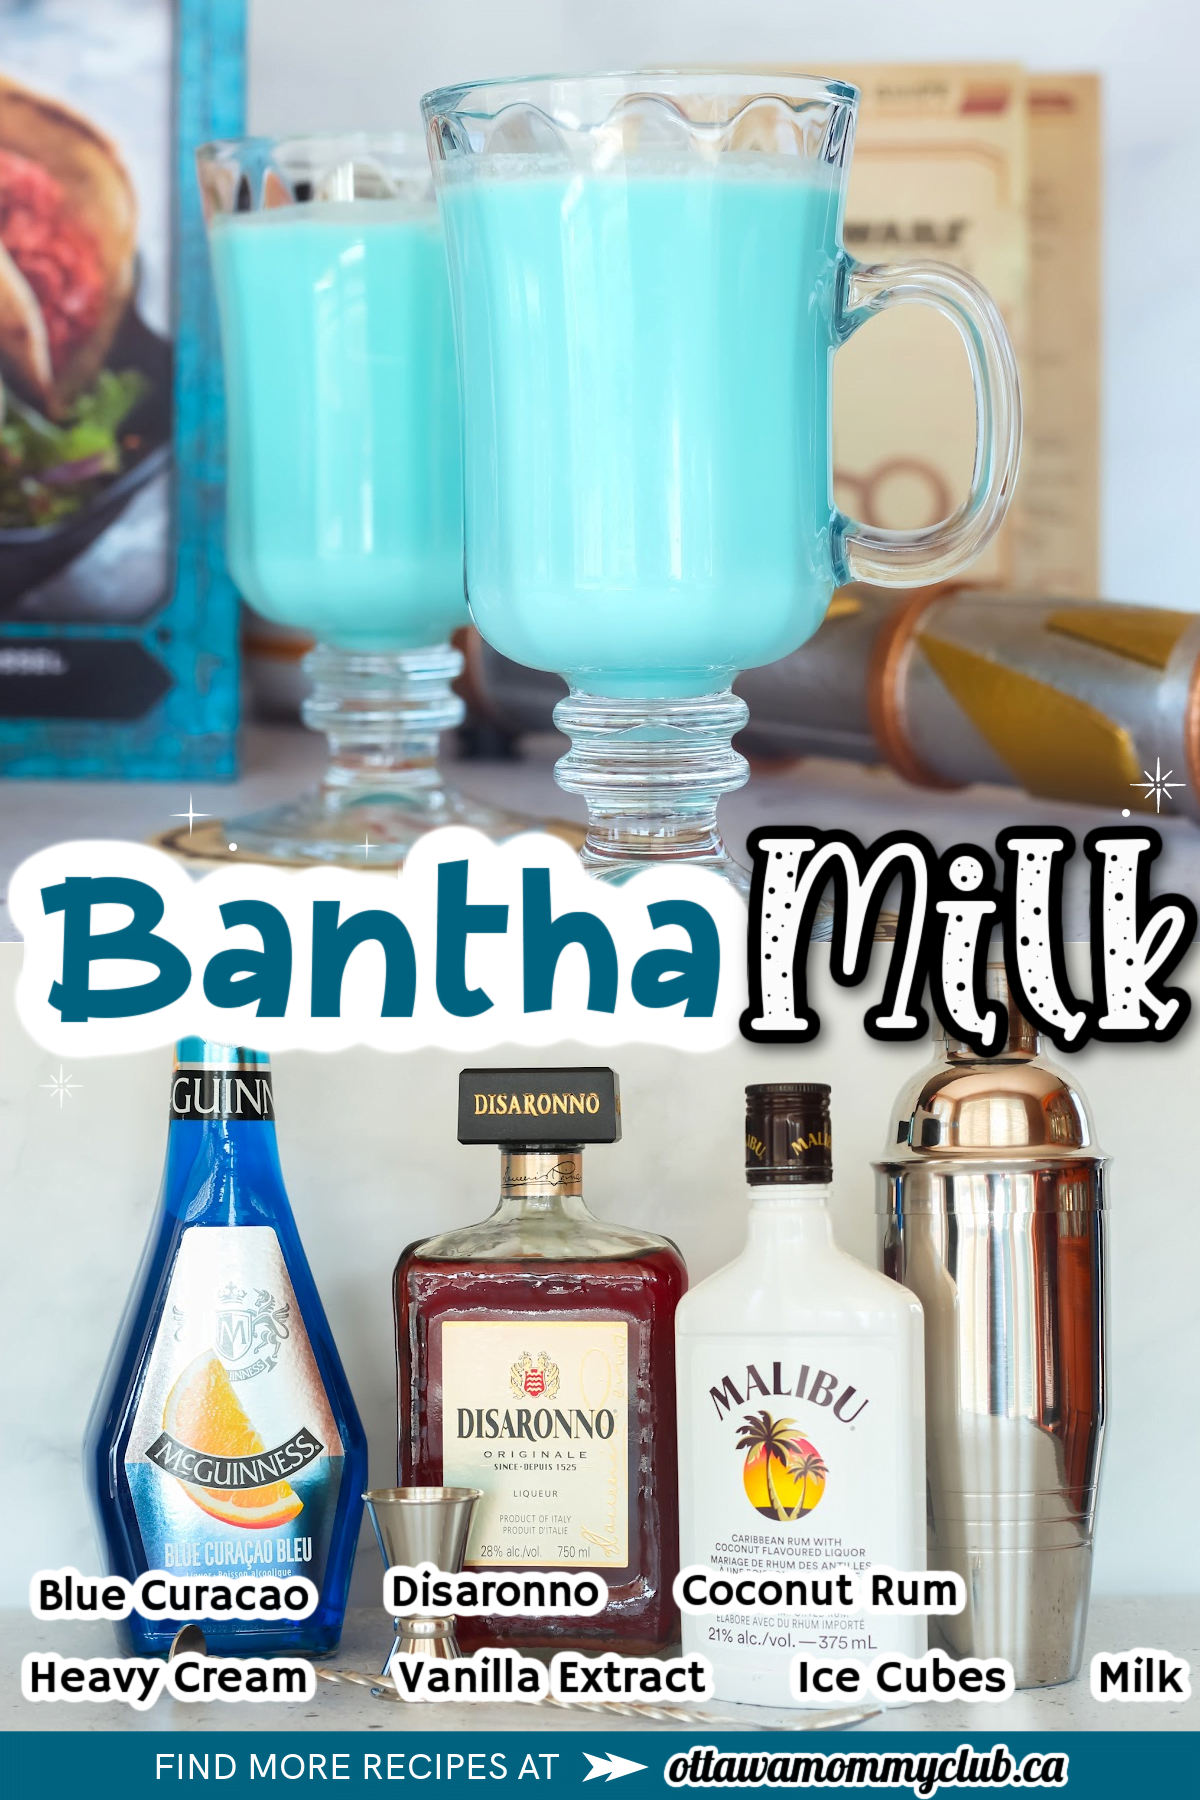 Bantha Milk Cocktail And Mocktail Inspired By Star Wars: Galaxy's Edge